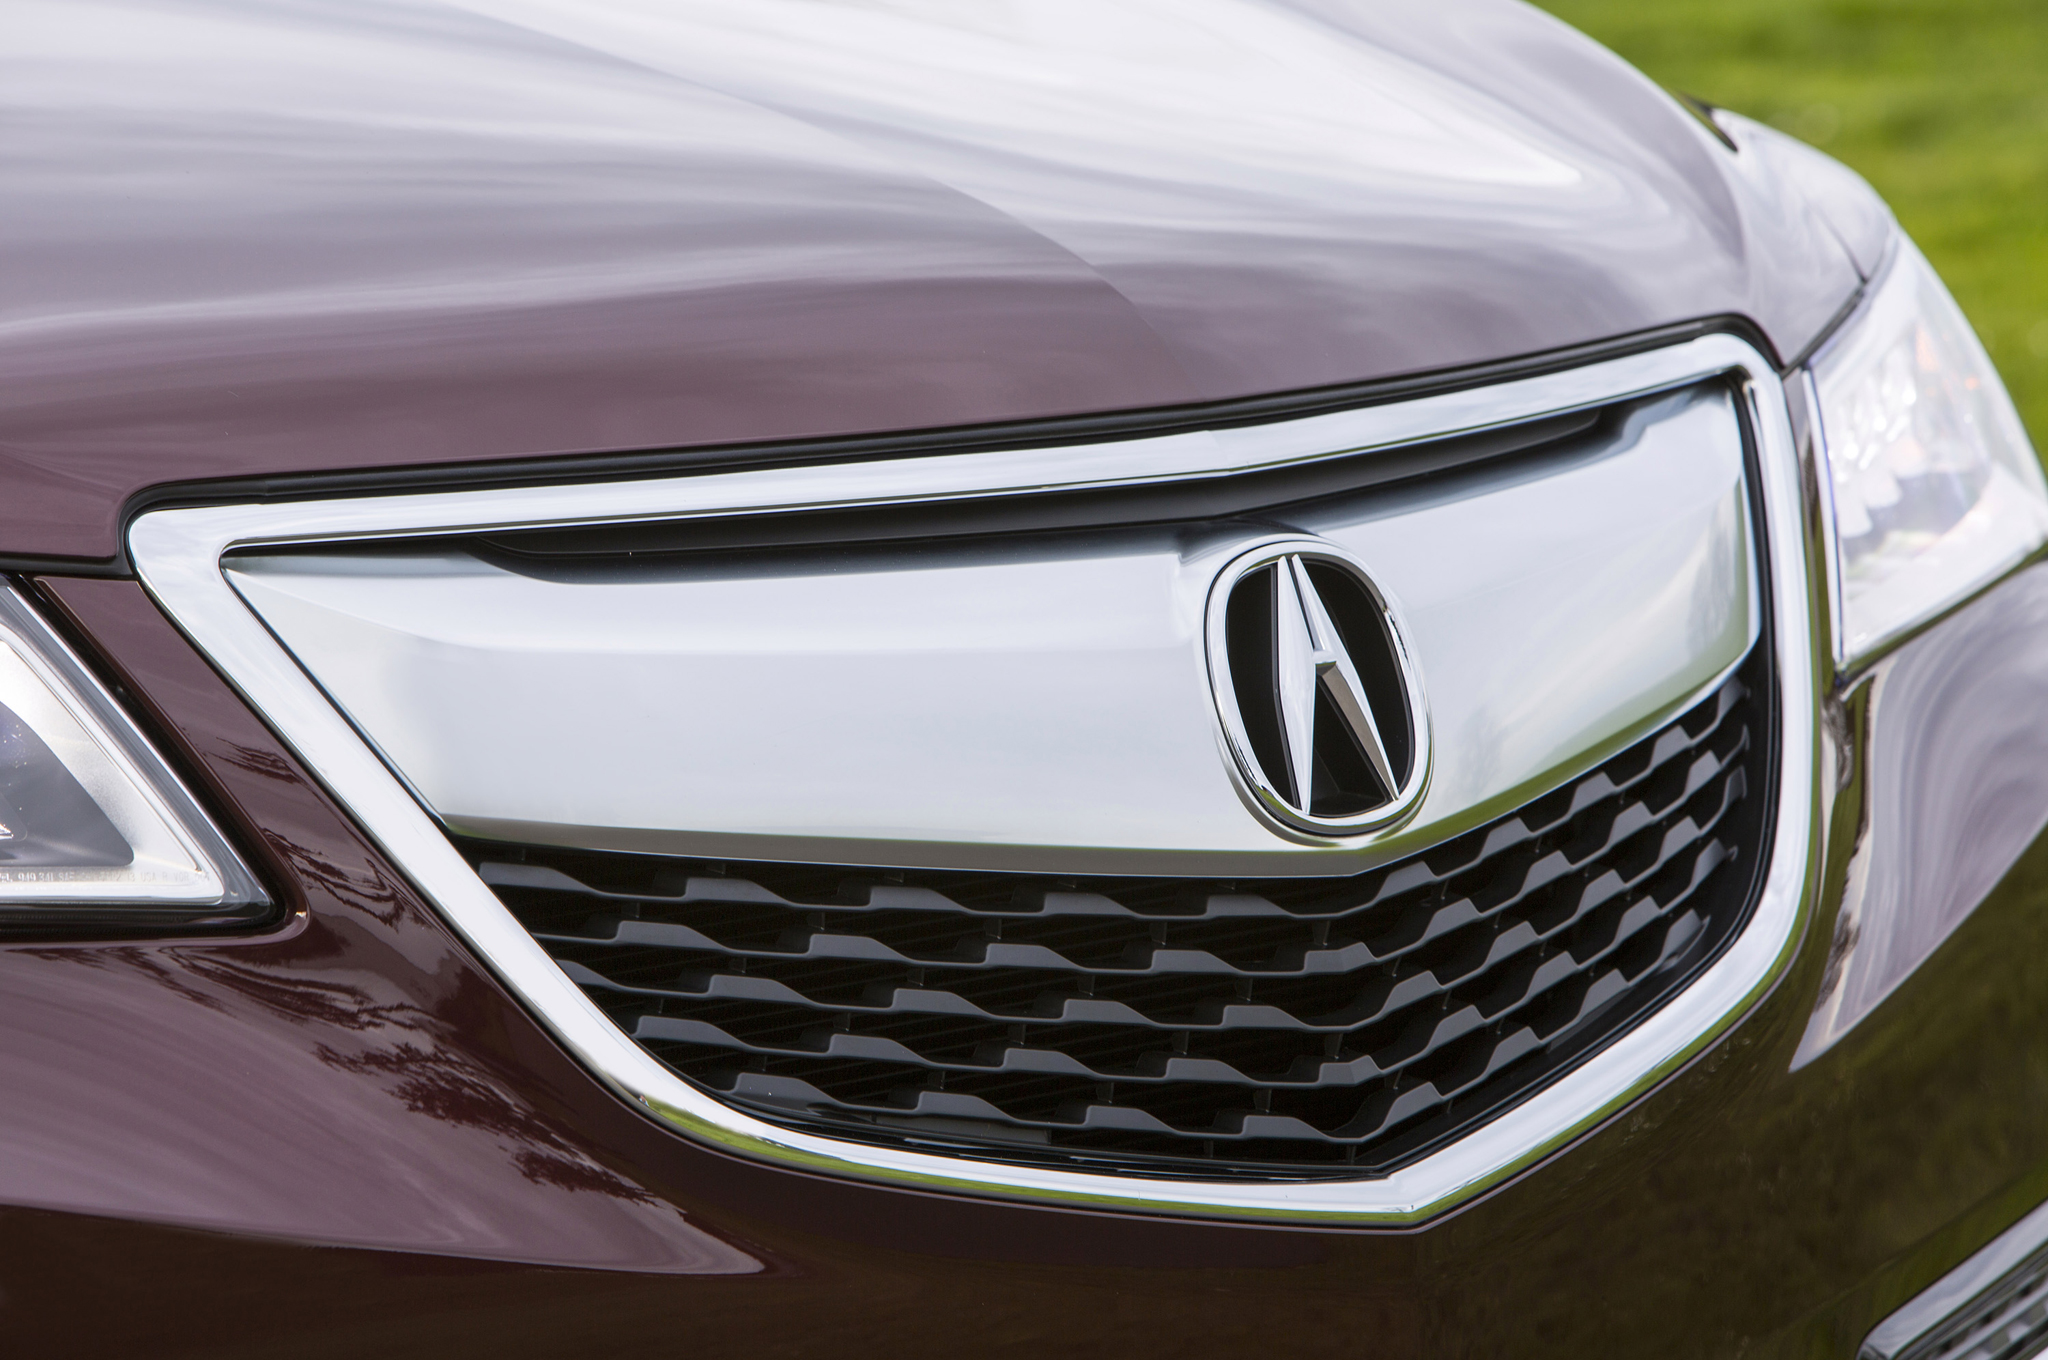 acura logo cars hd wallpapers 2014 Desktop Backgrounds for HD 2048x1360